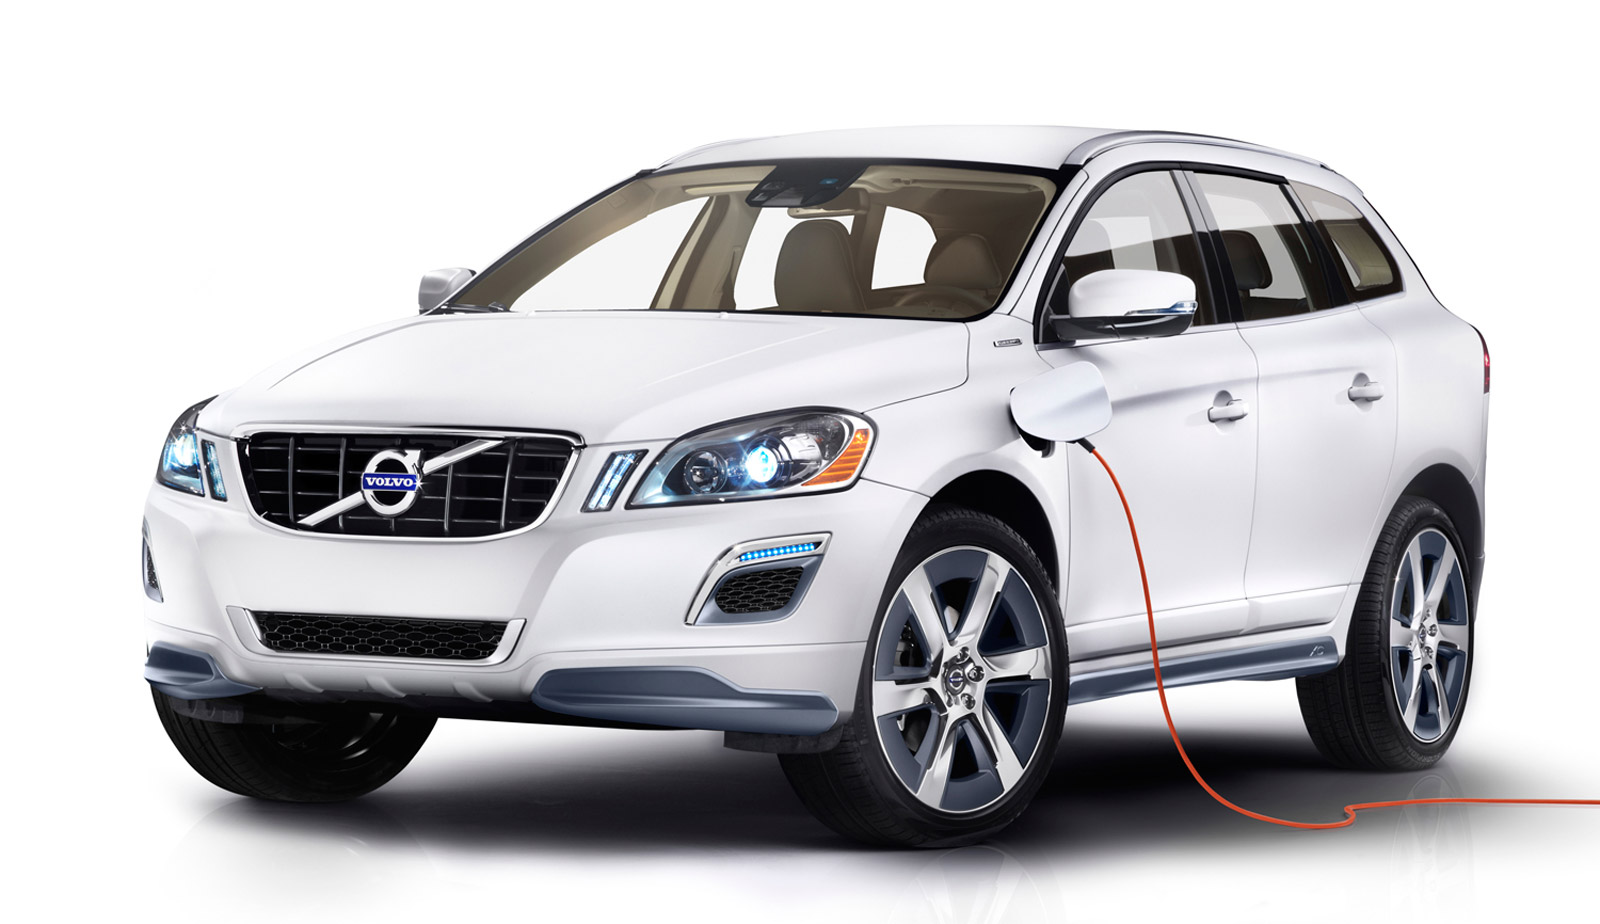 Volvo Xc60 Plug In Hybrid Concept Revealed Ahead Of 2017 Detroit Auto Show